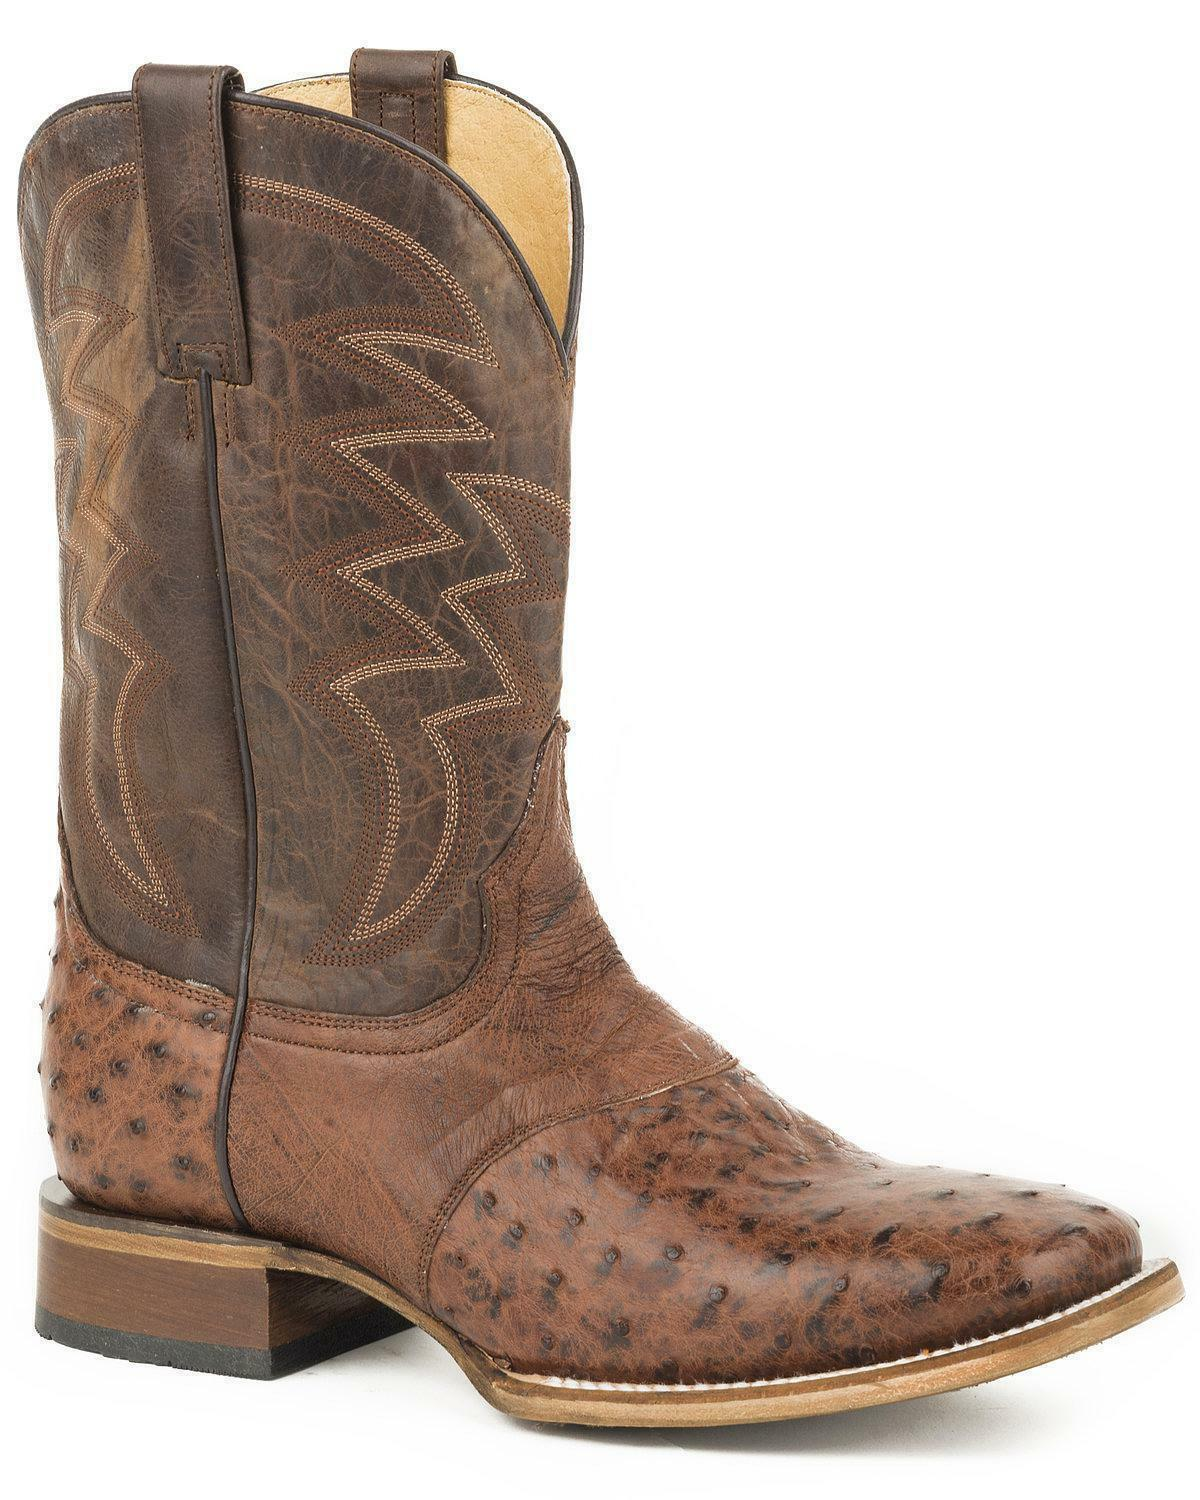 Roper Men's Deadwood Ostrich Skin avvio - Square Toe - 09-020-6500-8120